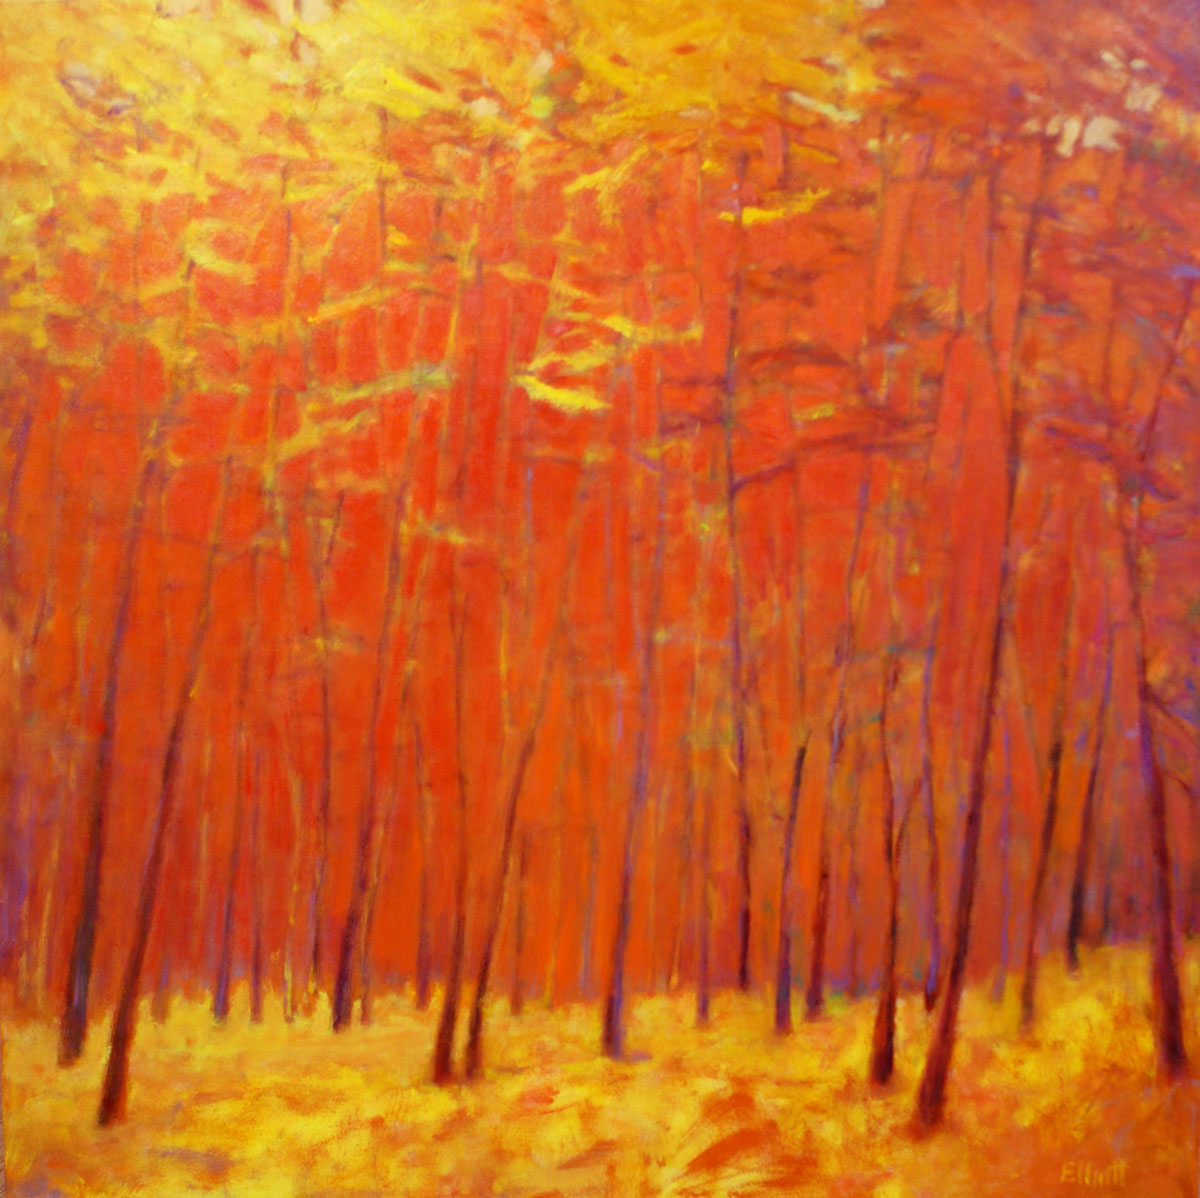 Ken Elliott, Golden Moment Against the Reds, oil on canvas, 48 x 48 inches